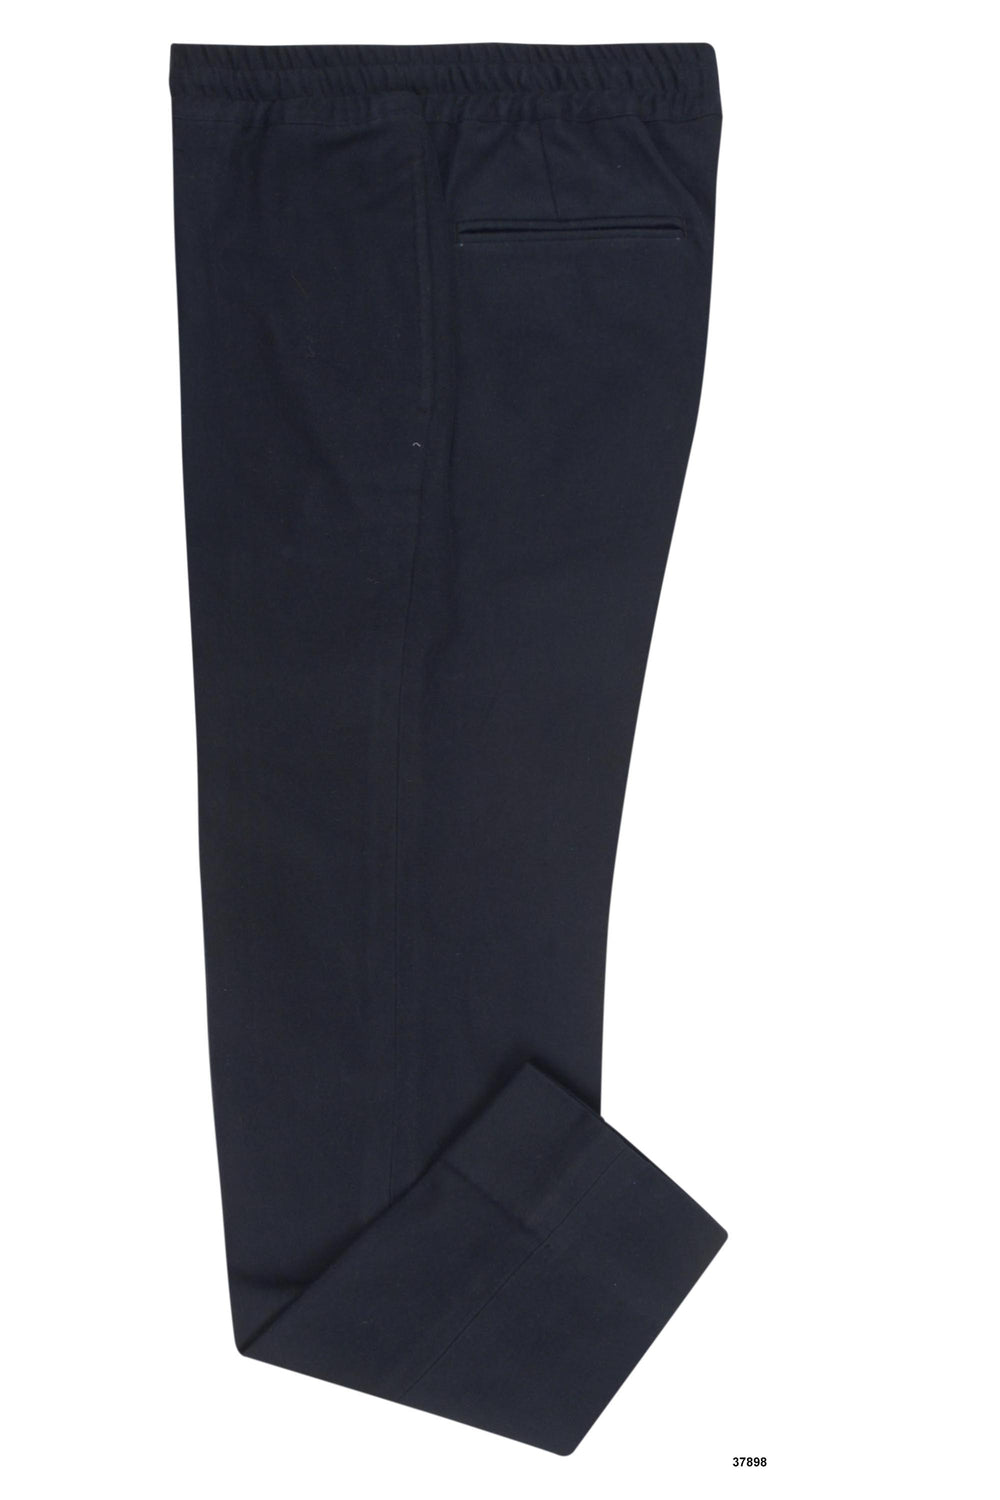 Dark Midnight Navy Flannel Pants